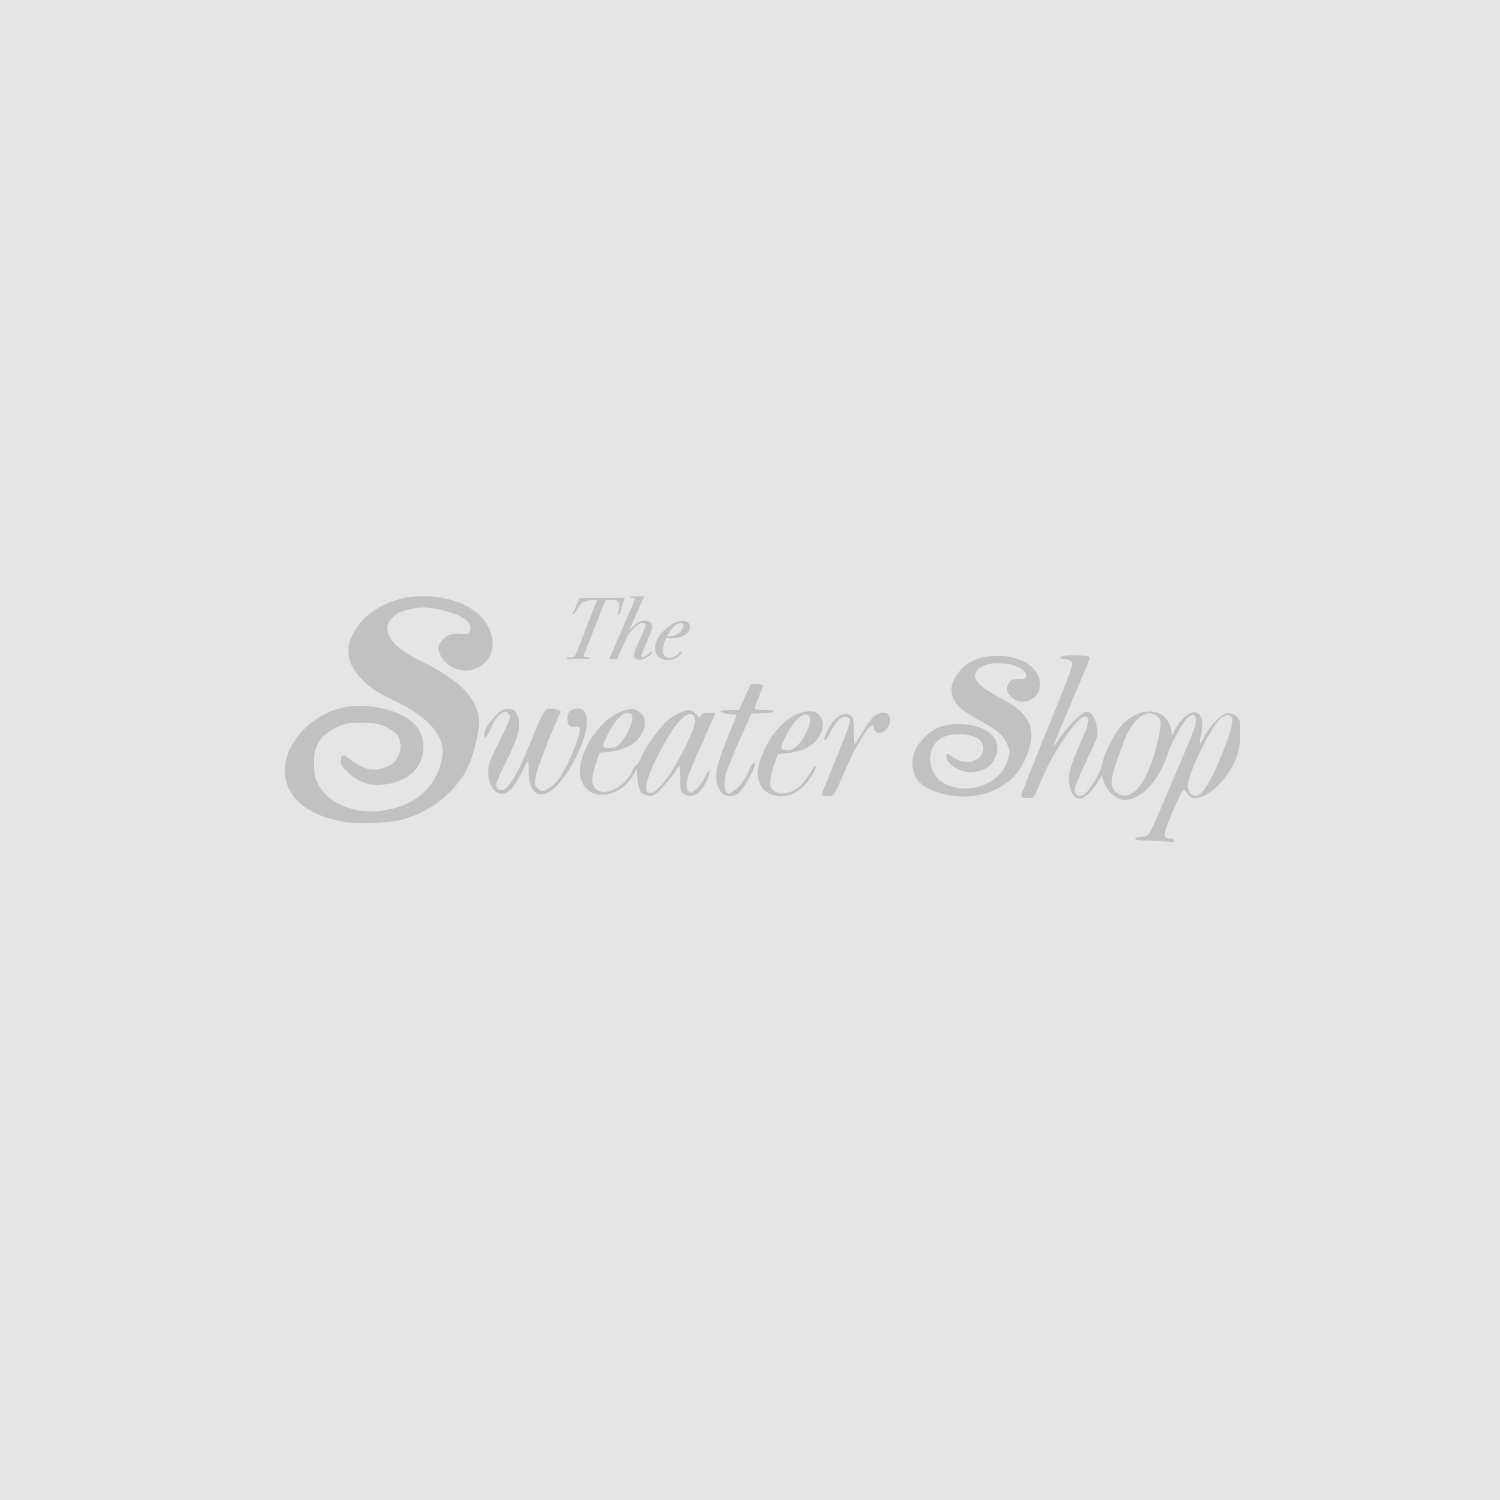 The Sweater Shop The Sweater Shop Ireland